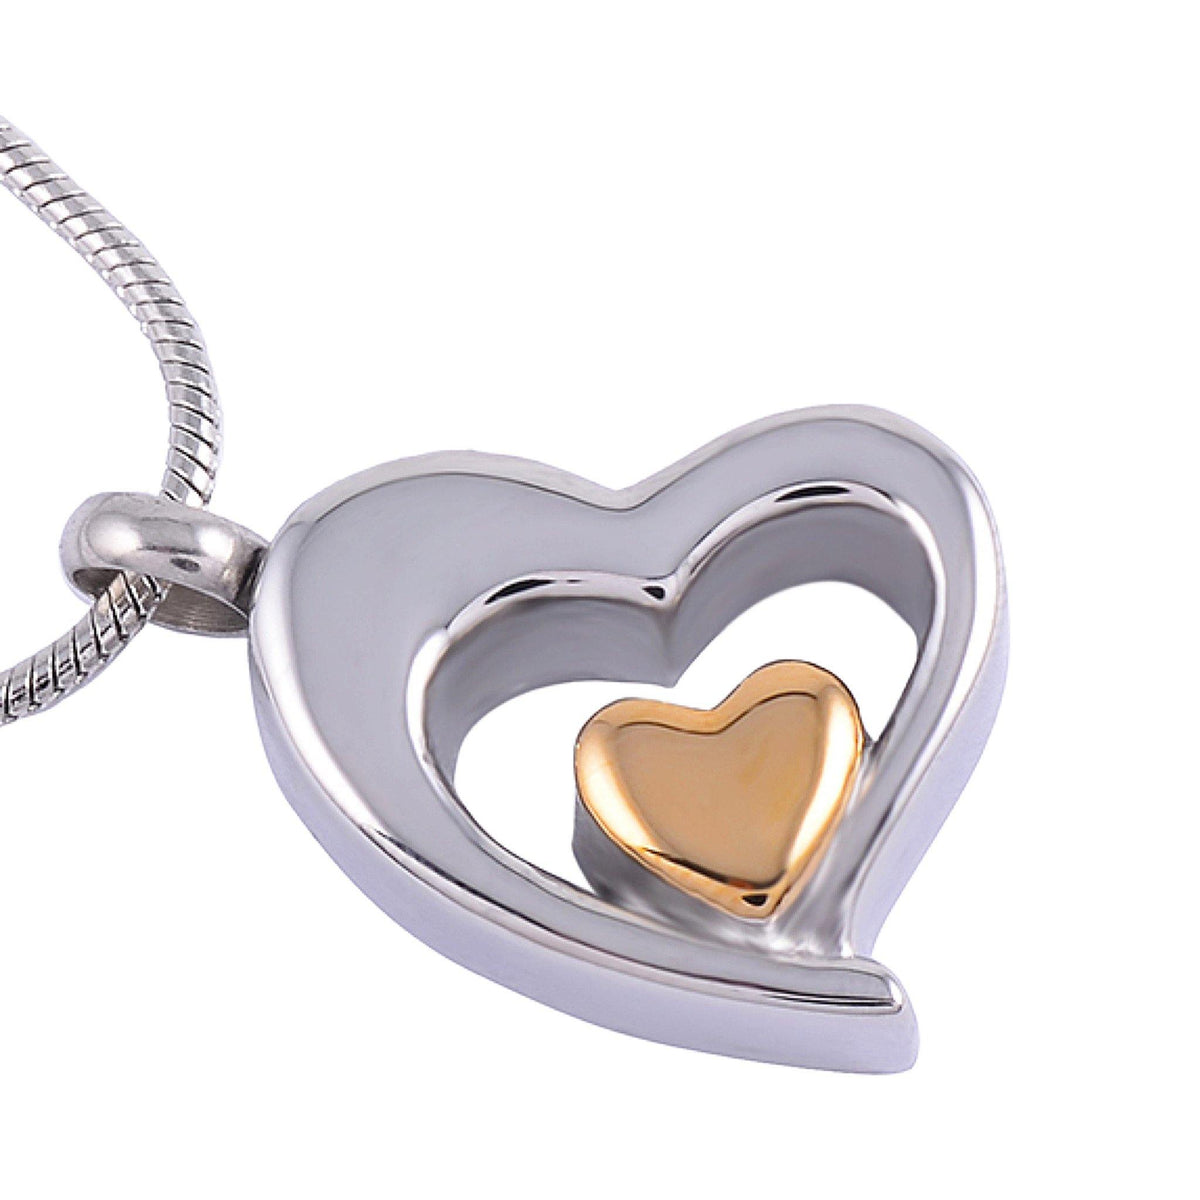 Teadrop Heart in Heart Cremation Ashes Pendant Design 60 - Urns UK